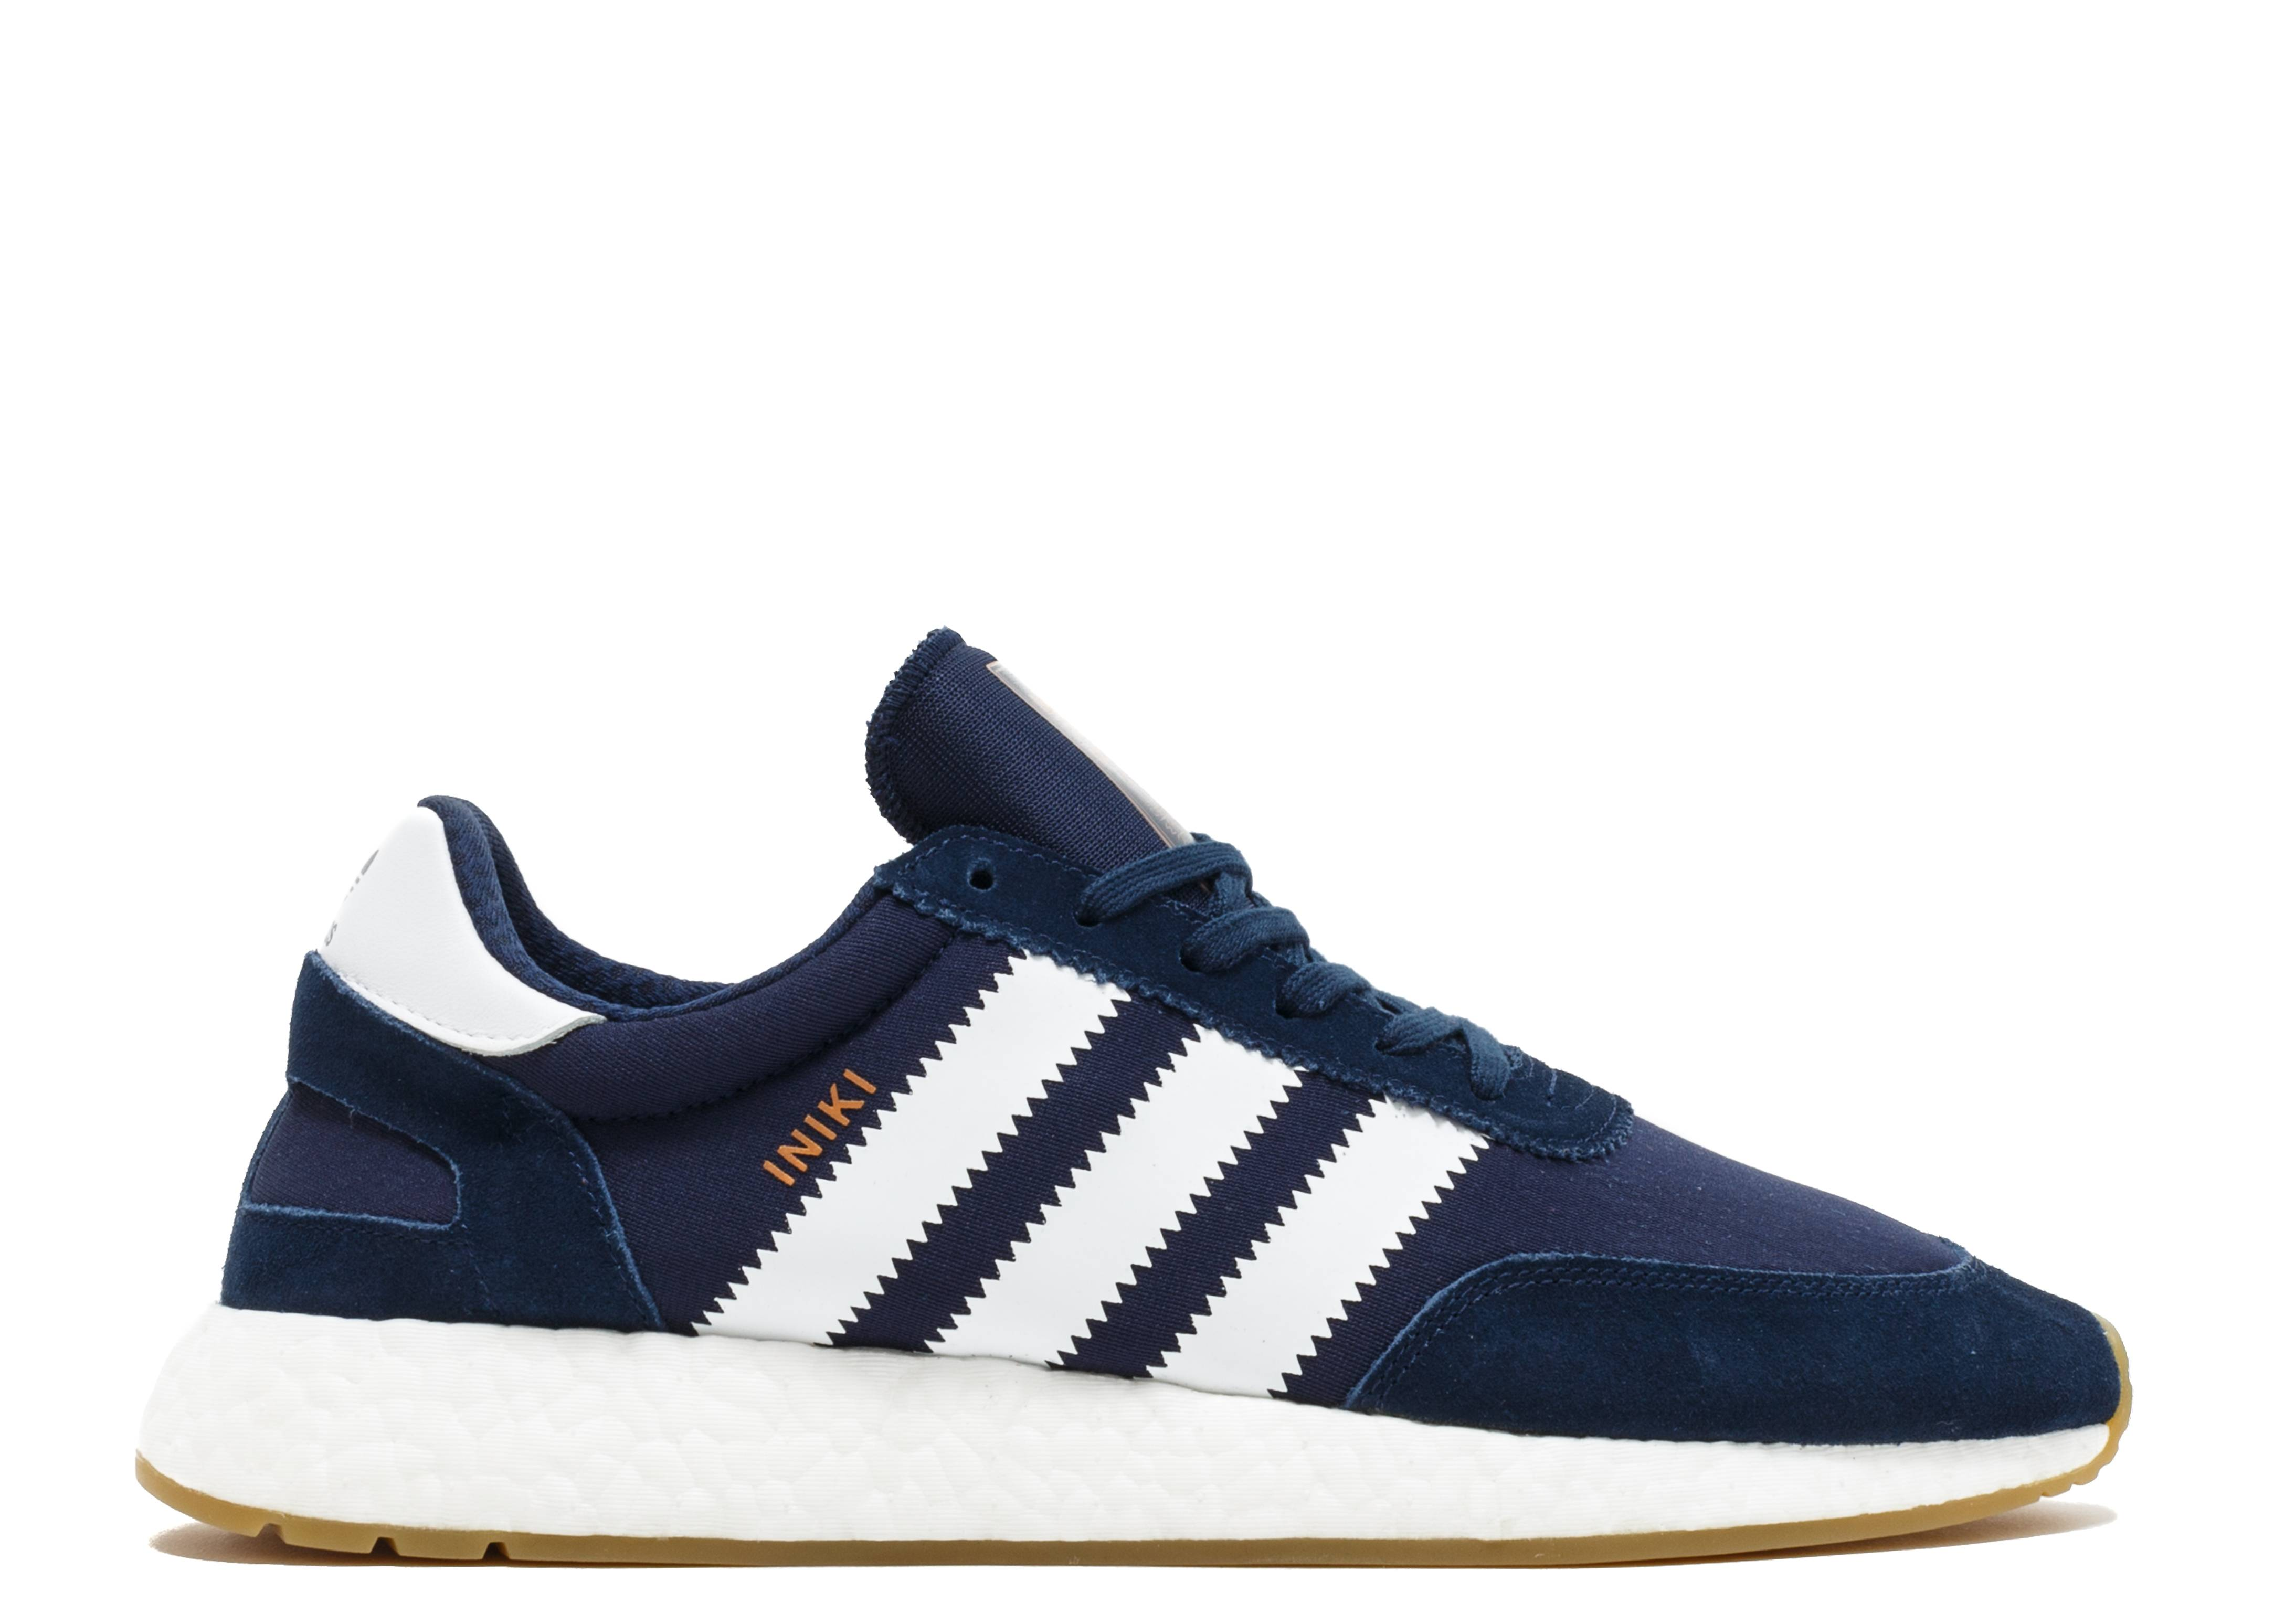 Adidas Shoes New Arrivals With Price